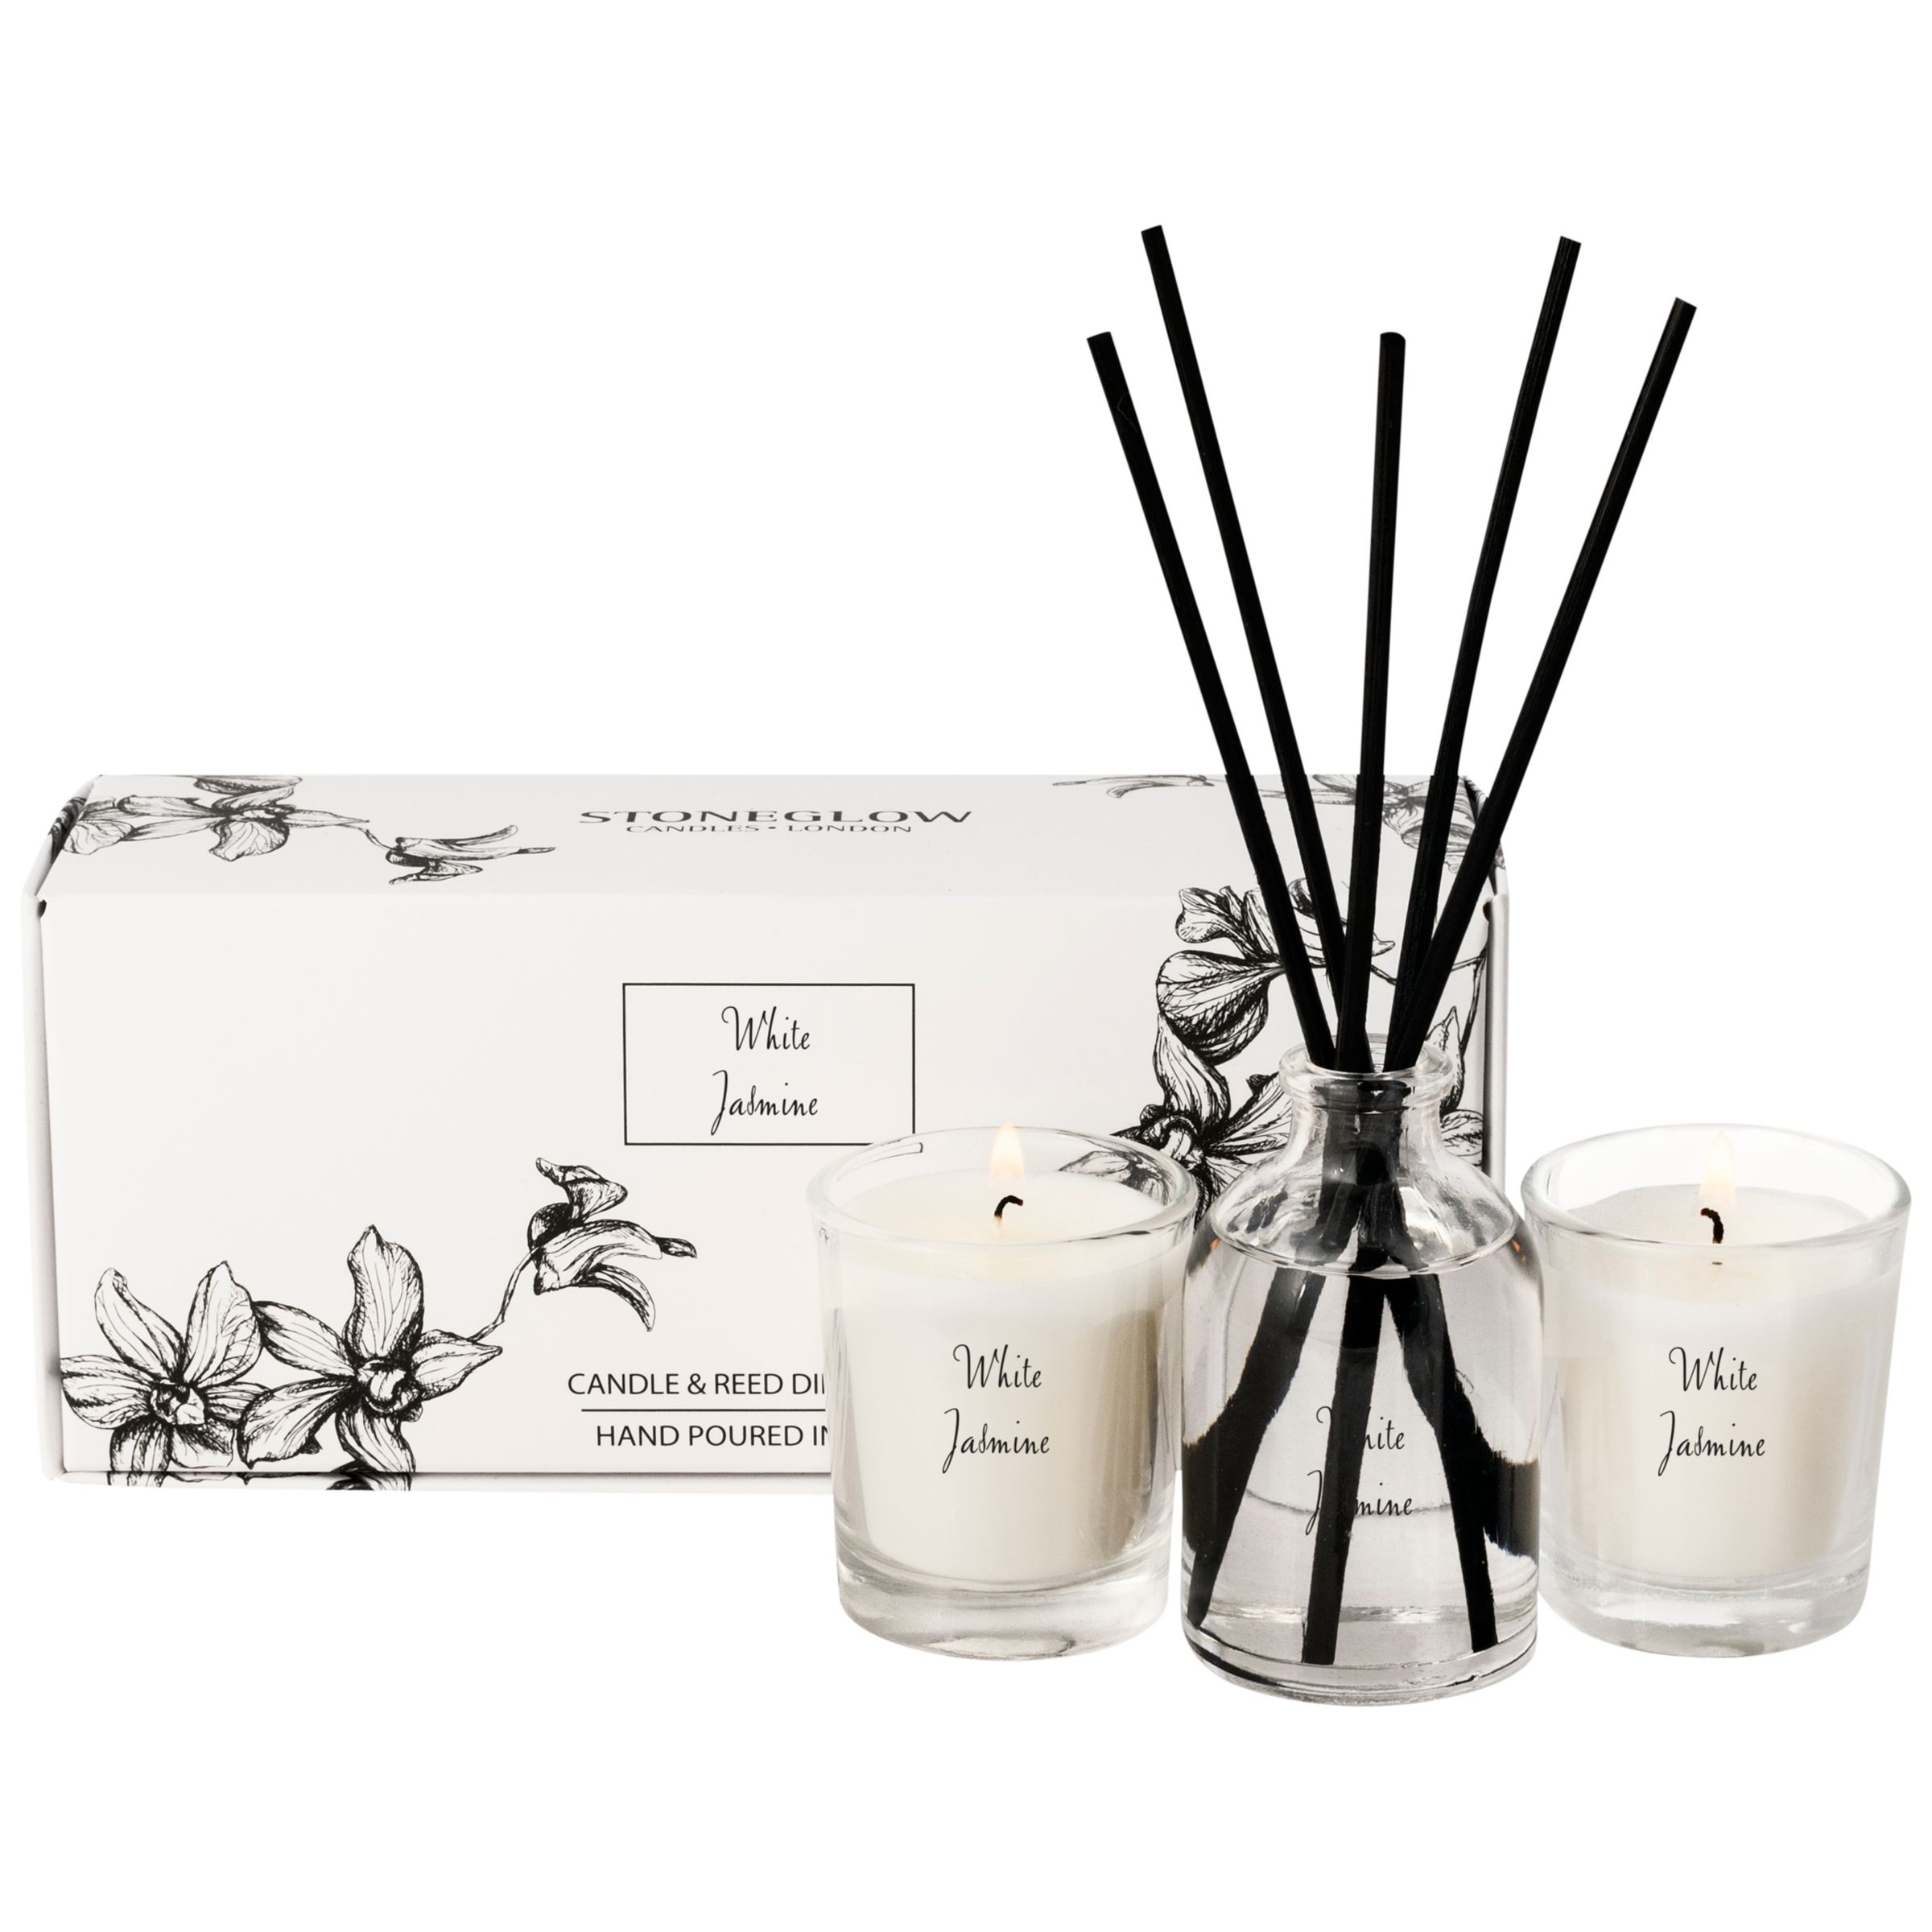 Stoneglow Stoneglow Scented Candles and Diffuser Gift Set, New Jasmine